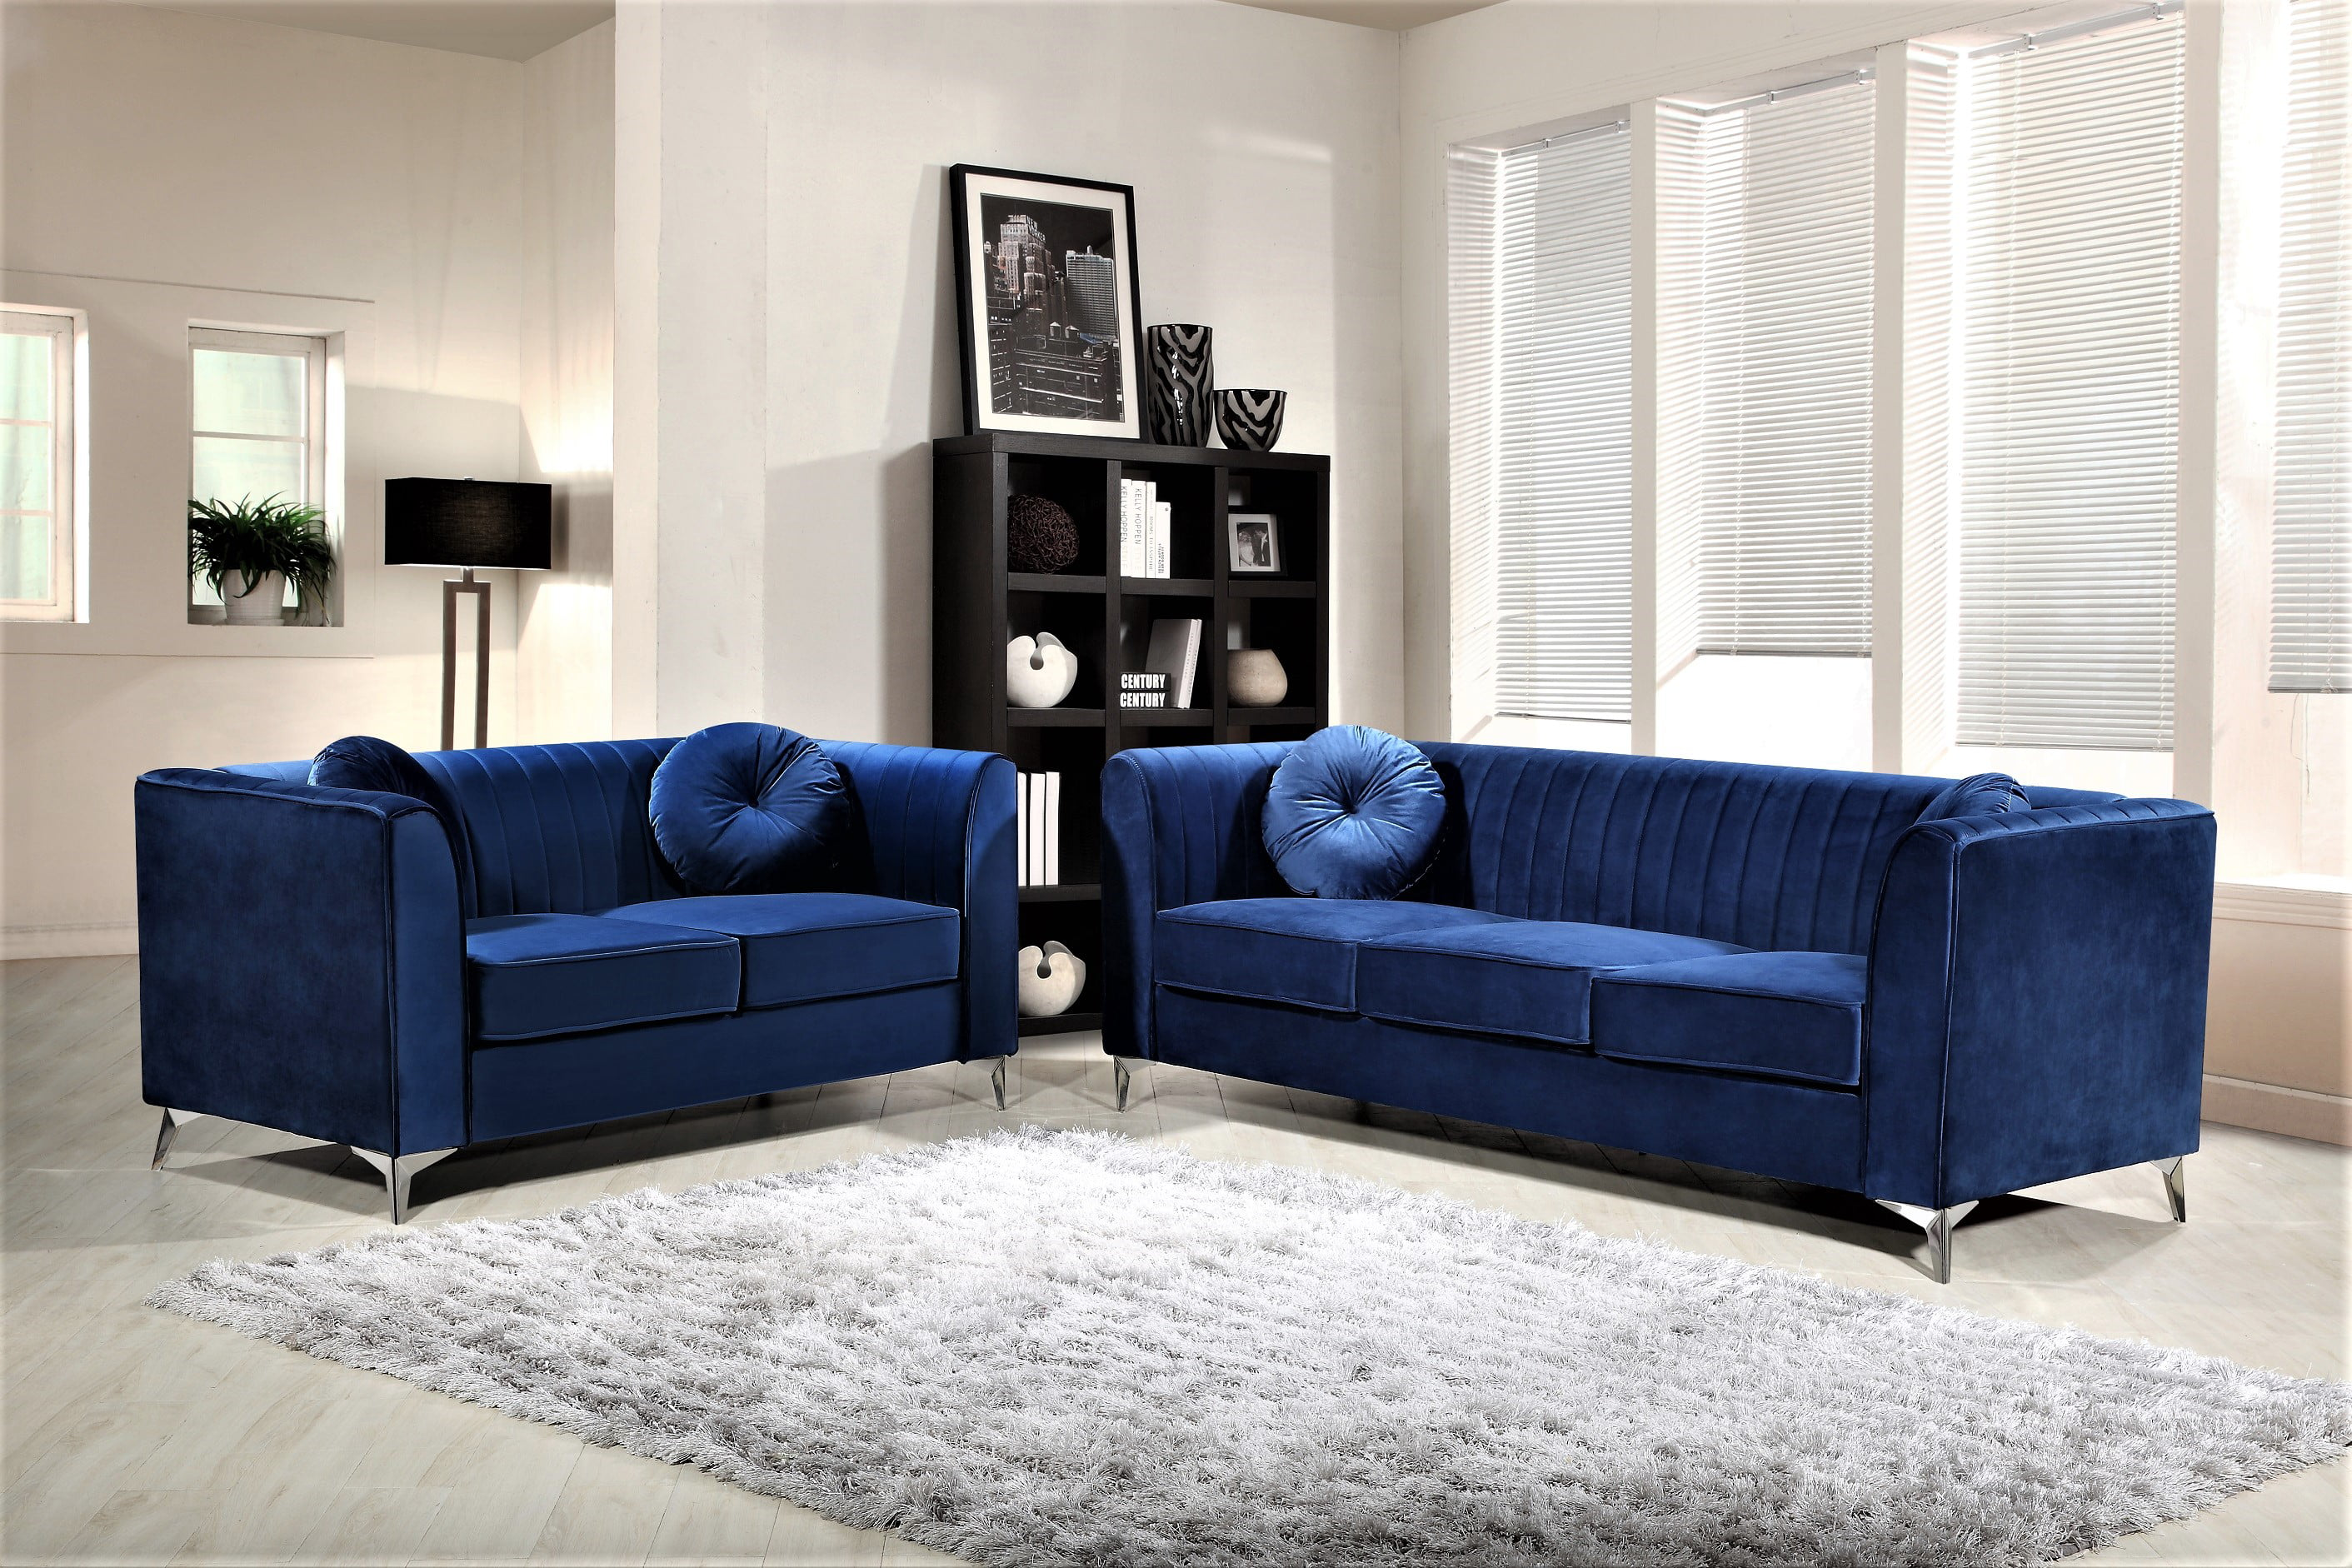 Us pride furniture valak 2 piece velvet living room set blue walmart com